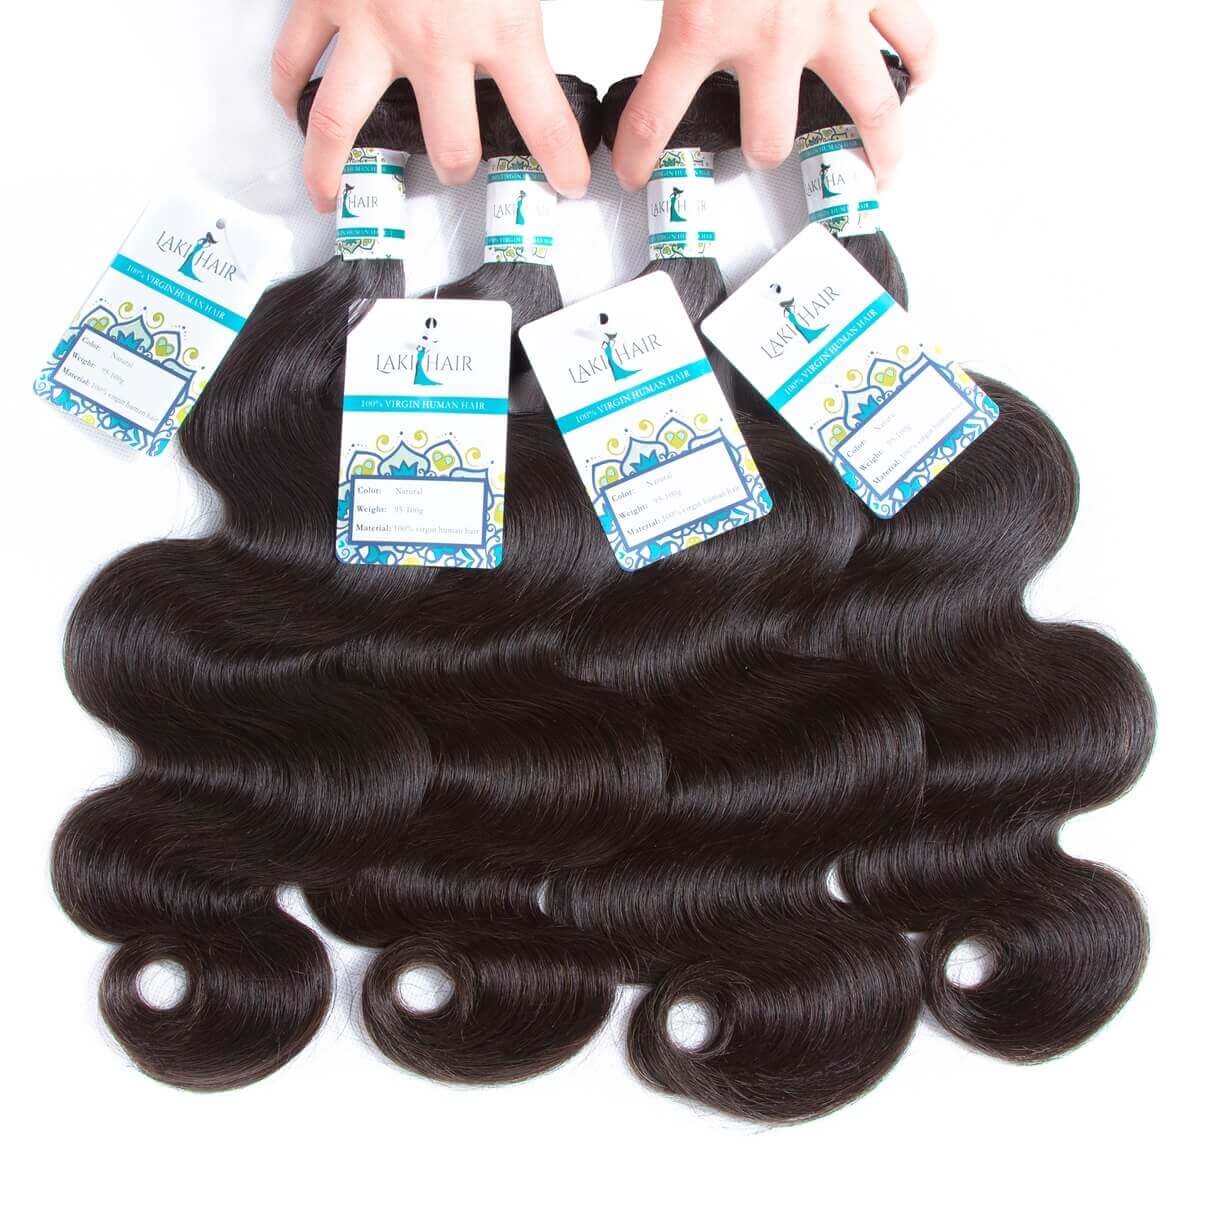 Lakihair Human Hair Bundles Body Wave 4 Bundles Brazilian/Indian/Peruvian/Malaysian Hair